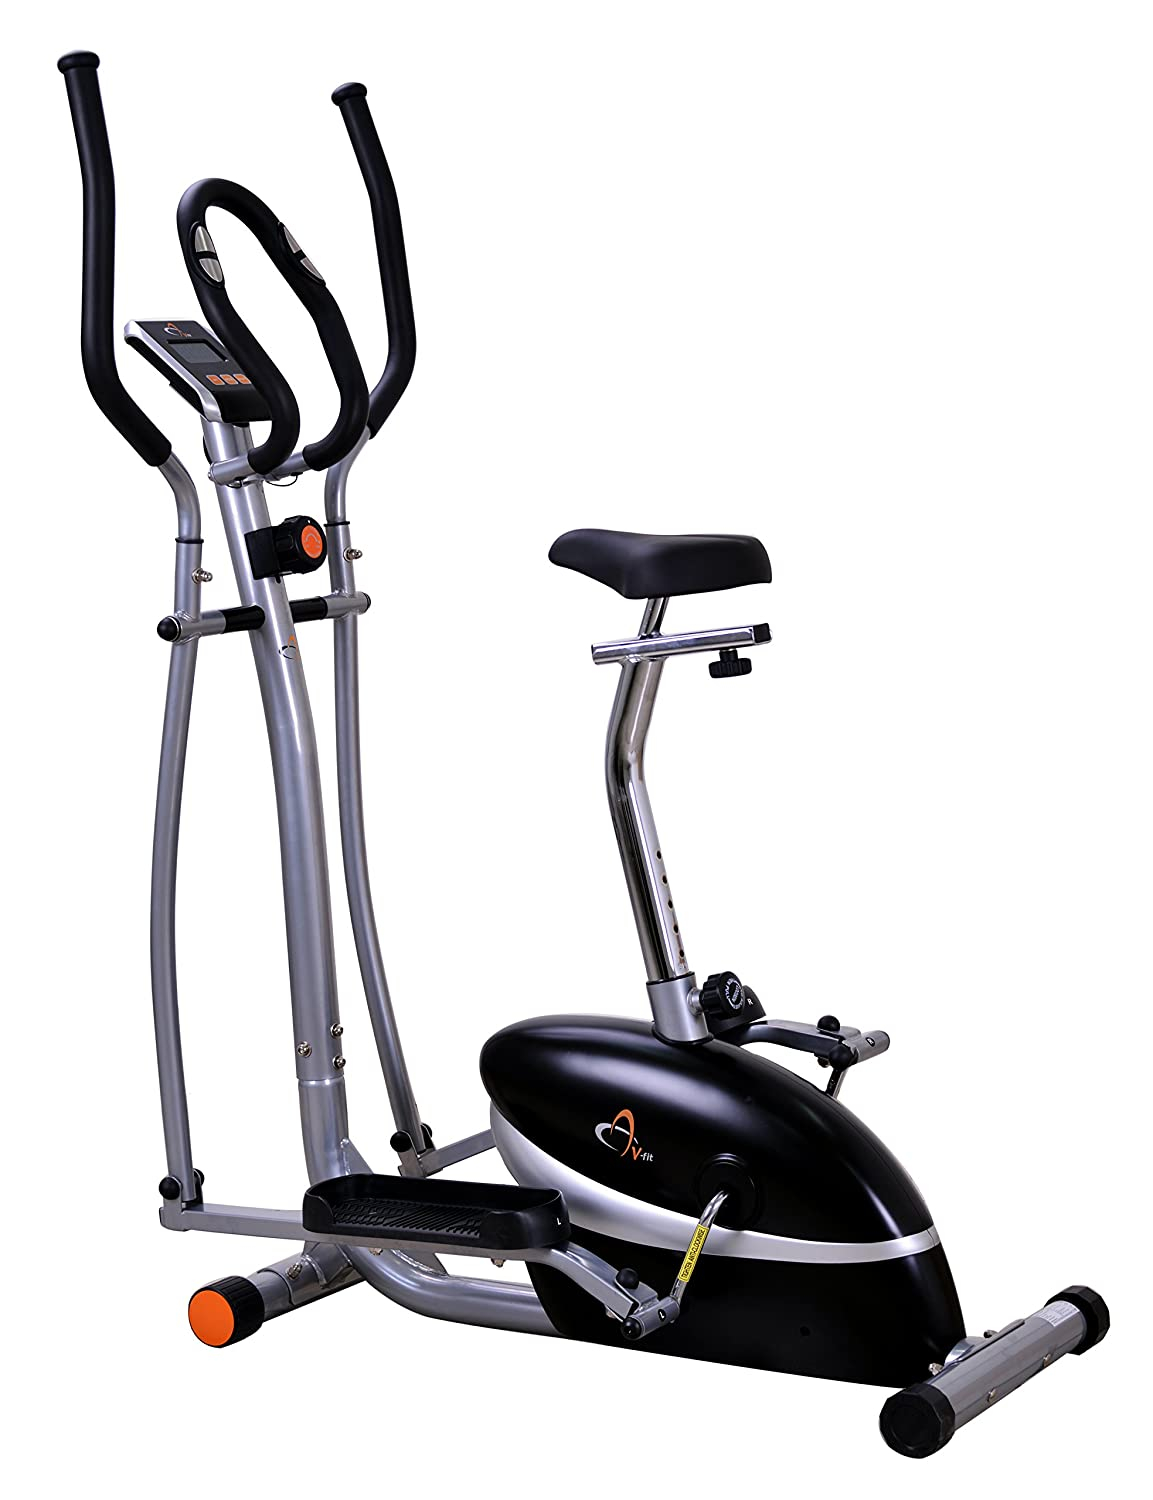 V-fit MCCT1 Combination 2-in-1 Magnetic Cycle and Elliptical Trainer:  Amazon.co.uk: Sports & Outdoors